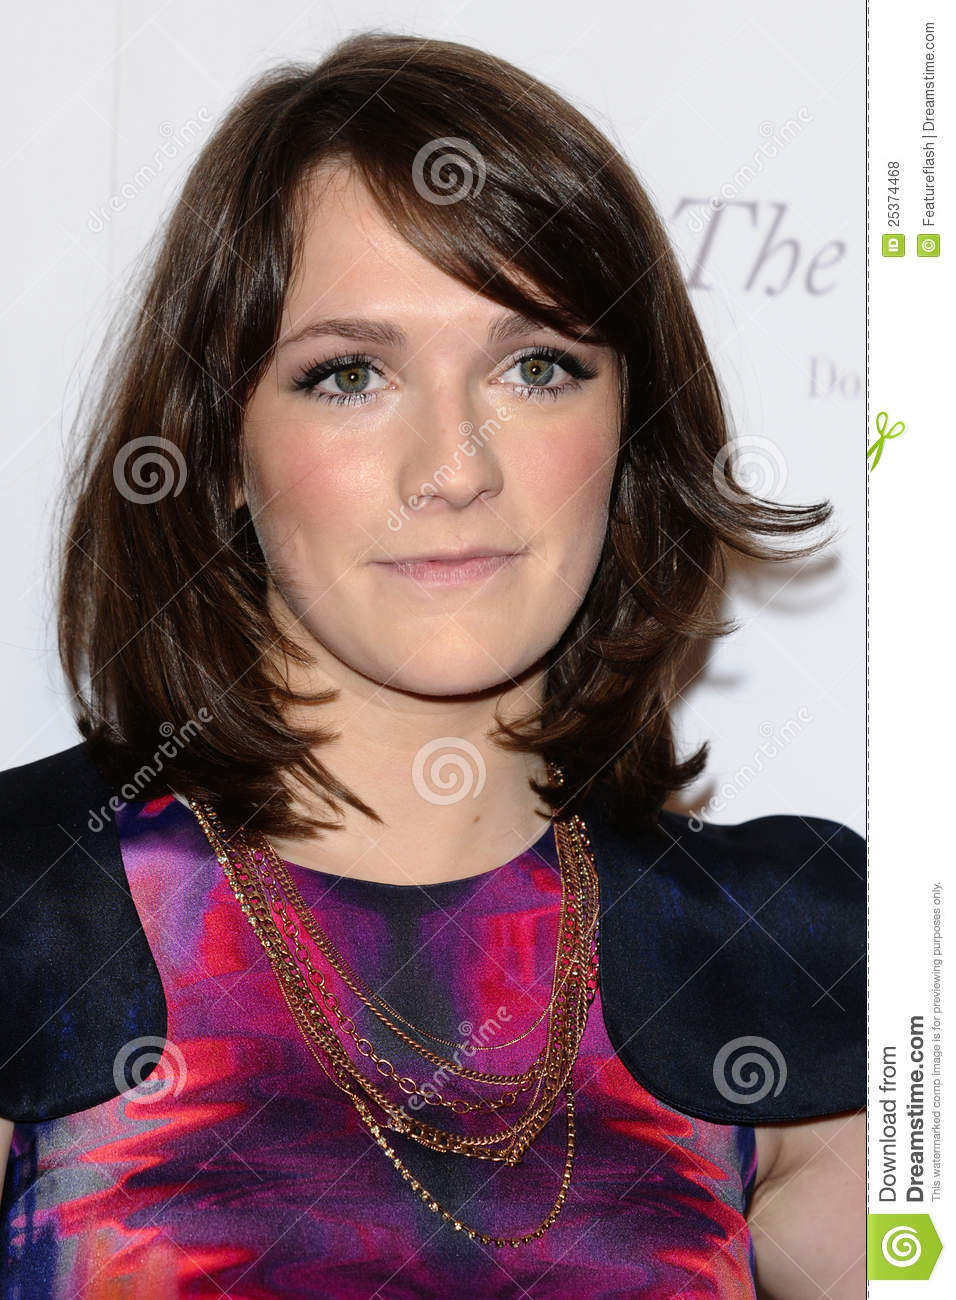 charlotte ritchie songs